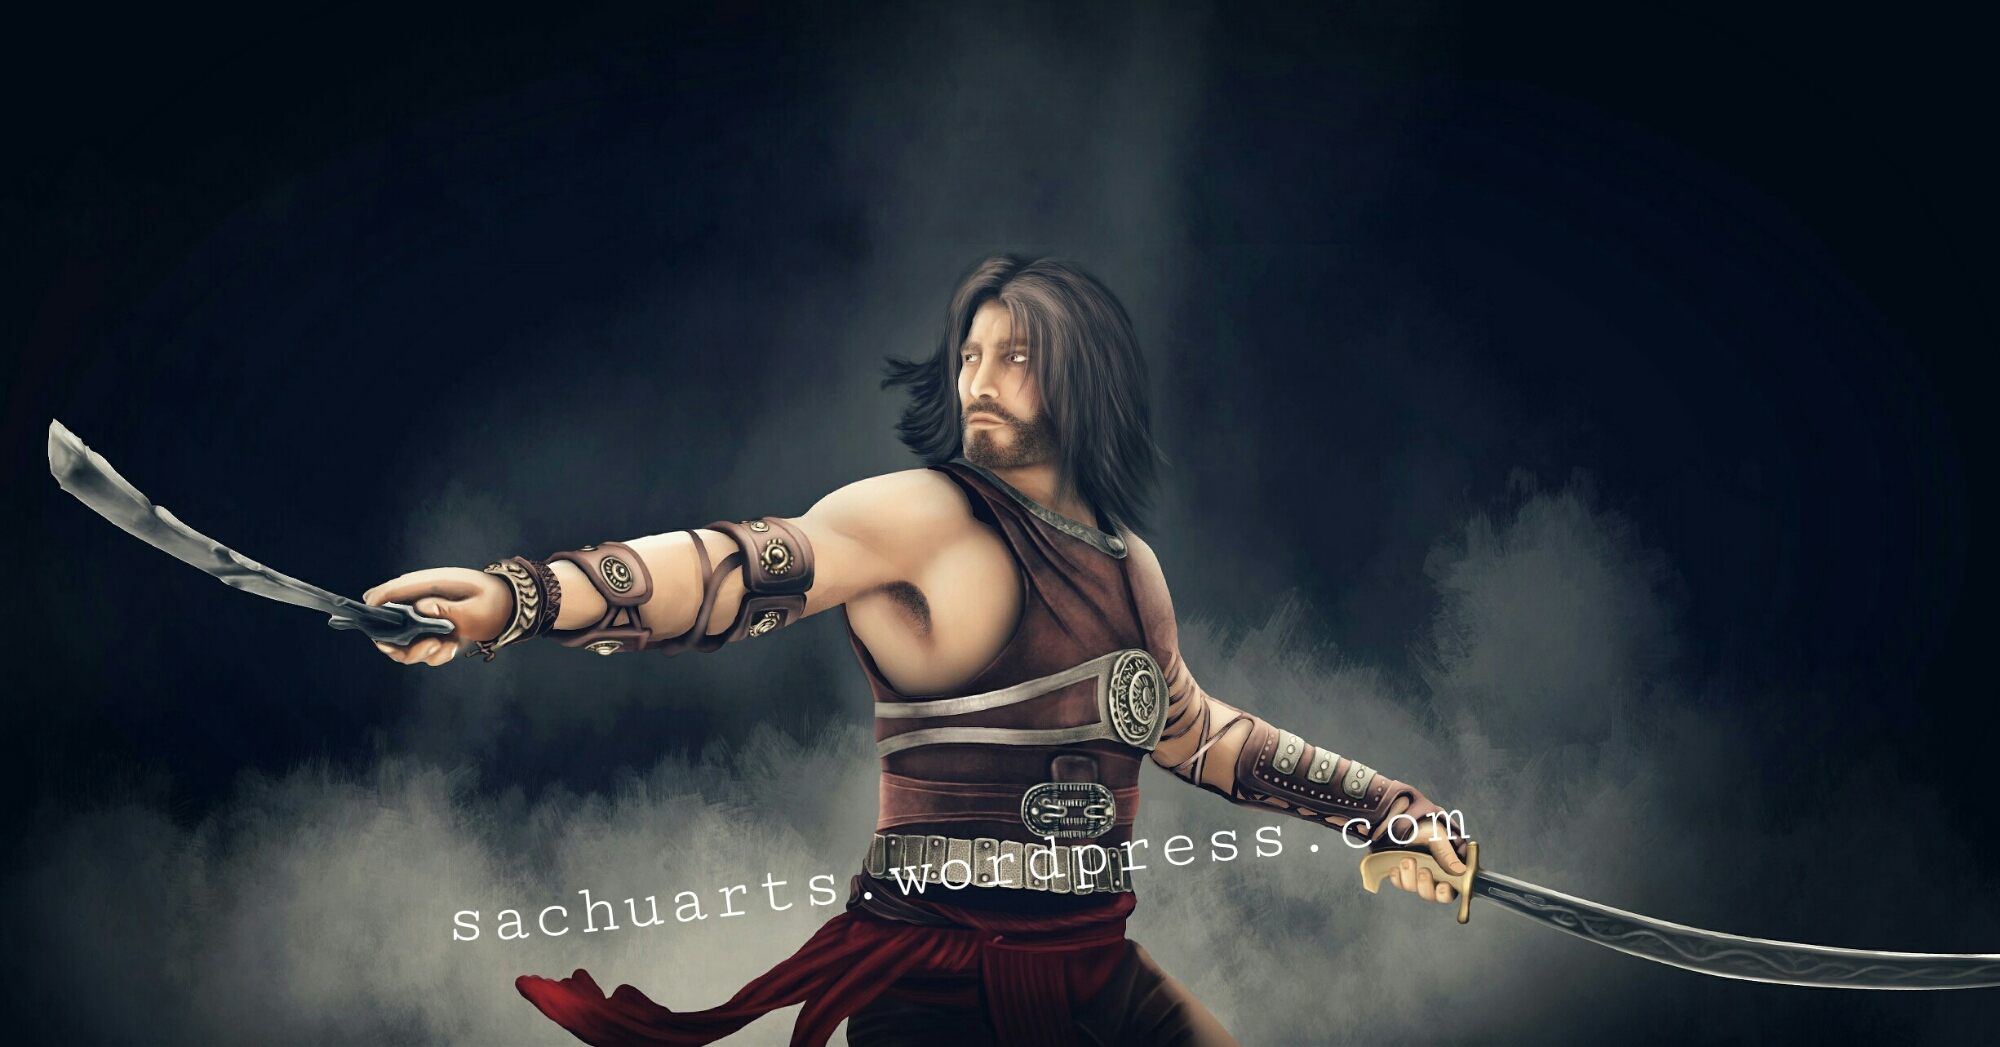 Prince of Persia digital painting